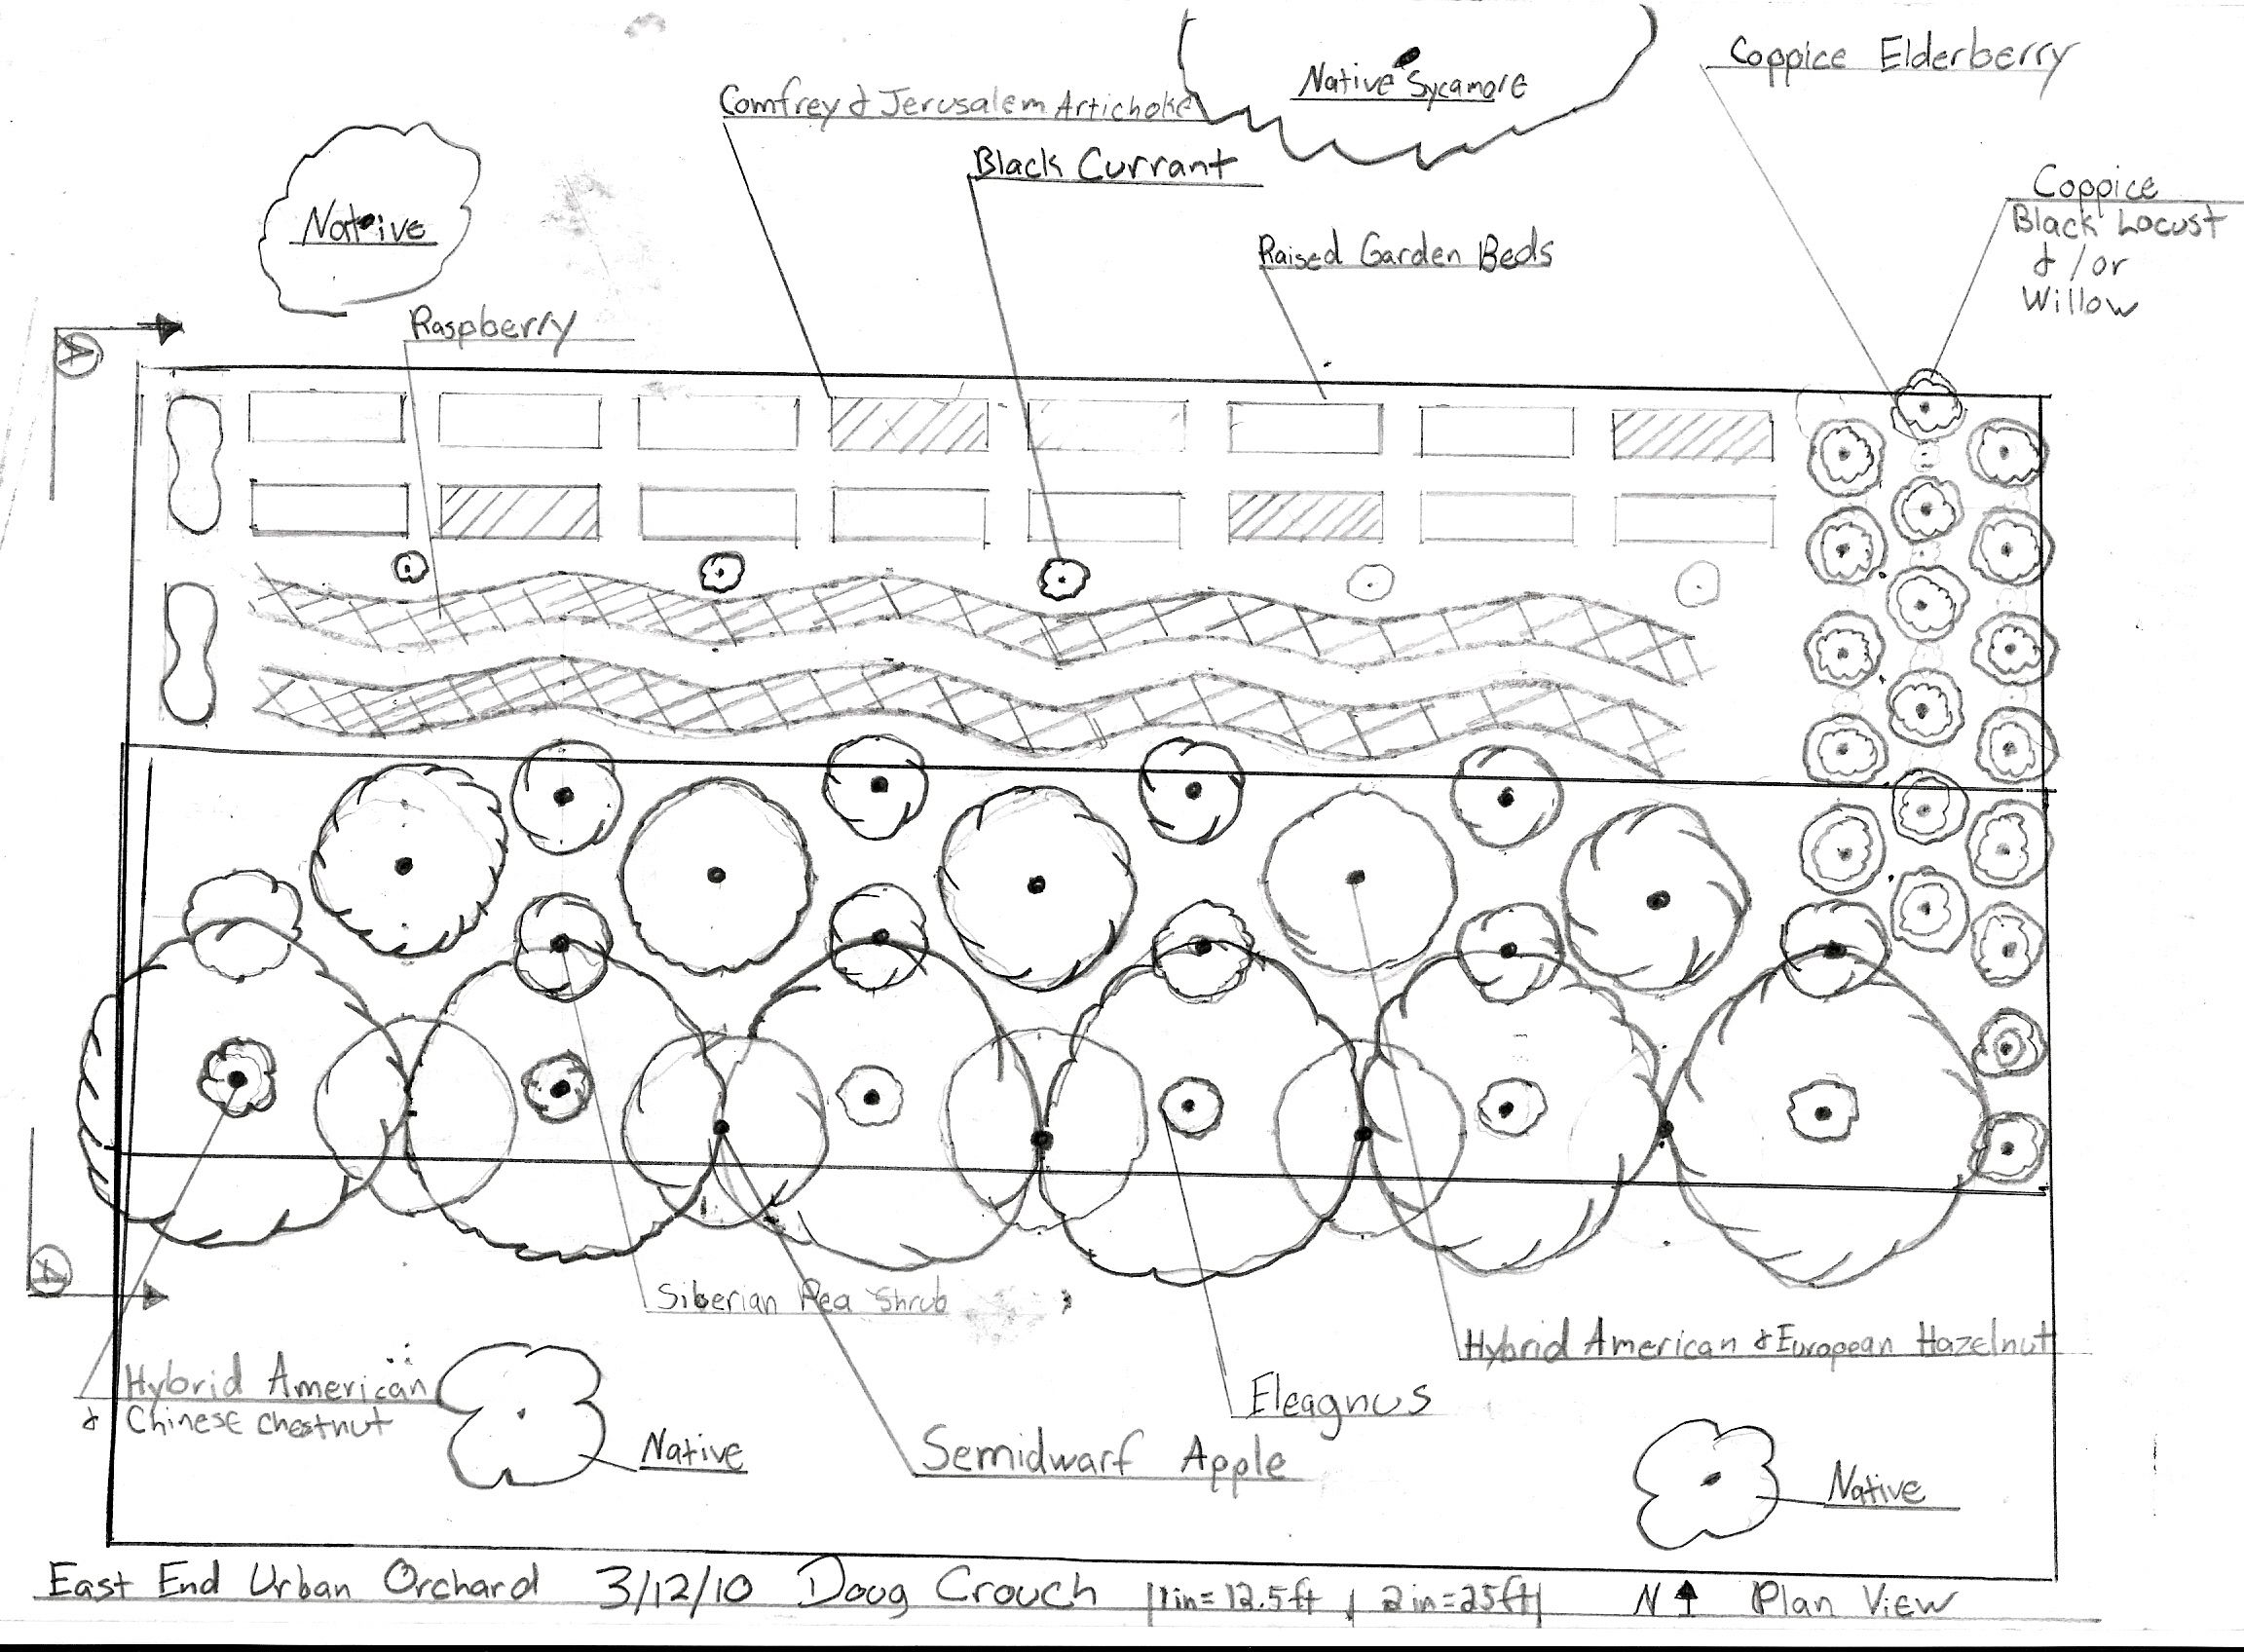 239c3dc9bd22c90d9340e346f8332327 orchard layout plan design permaculture garden orchard,Home Orchard Design